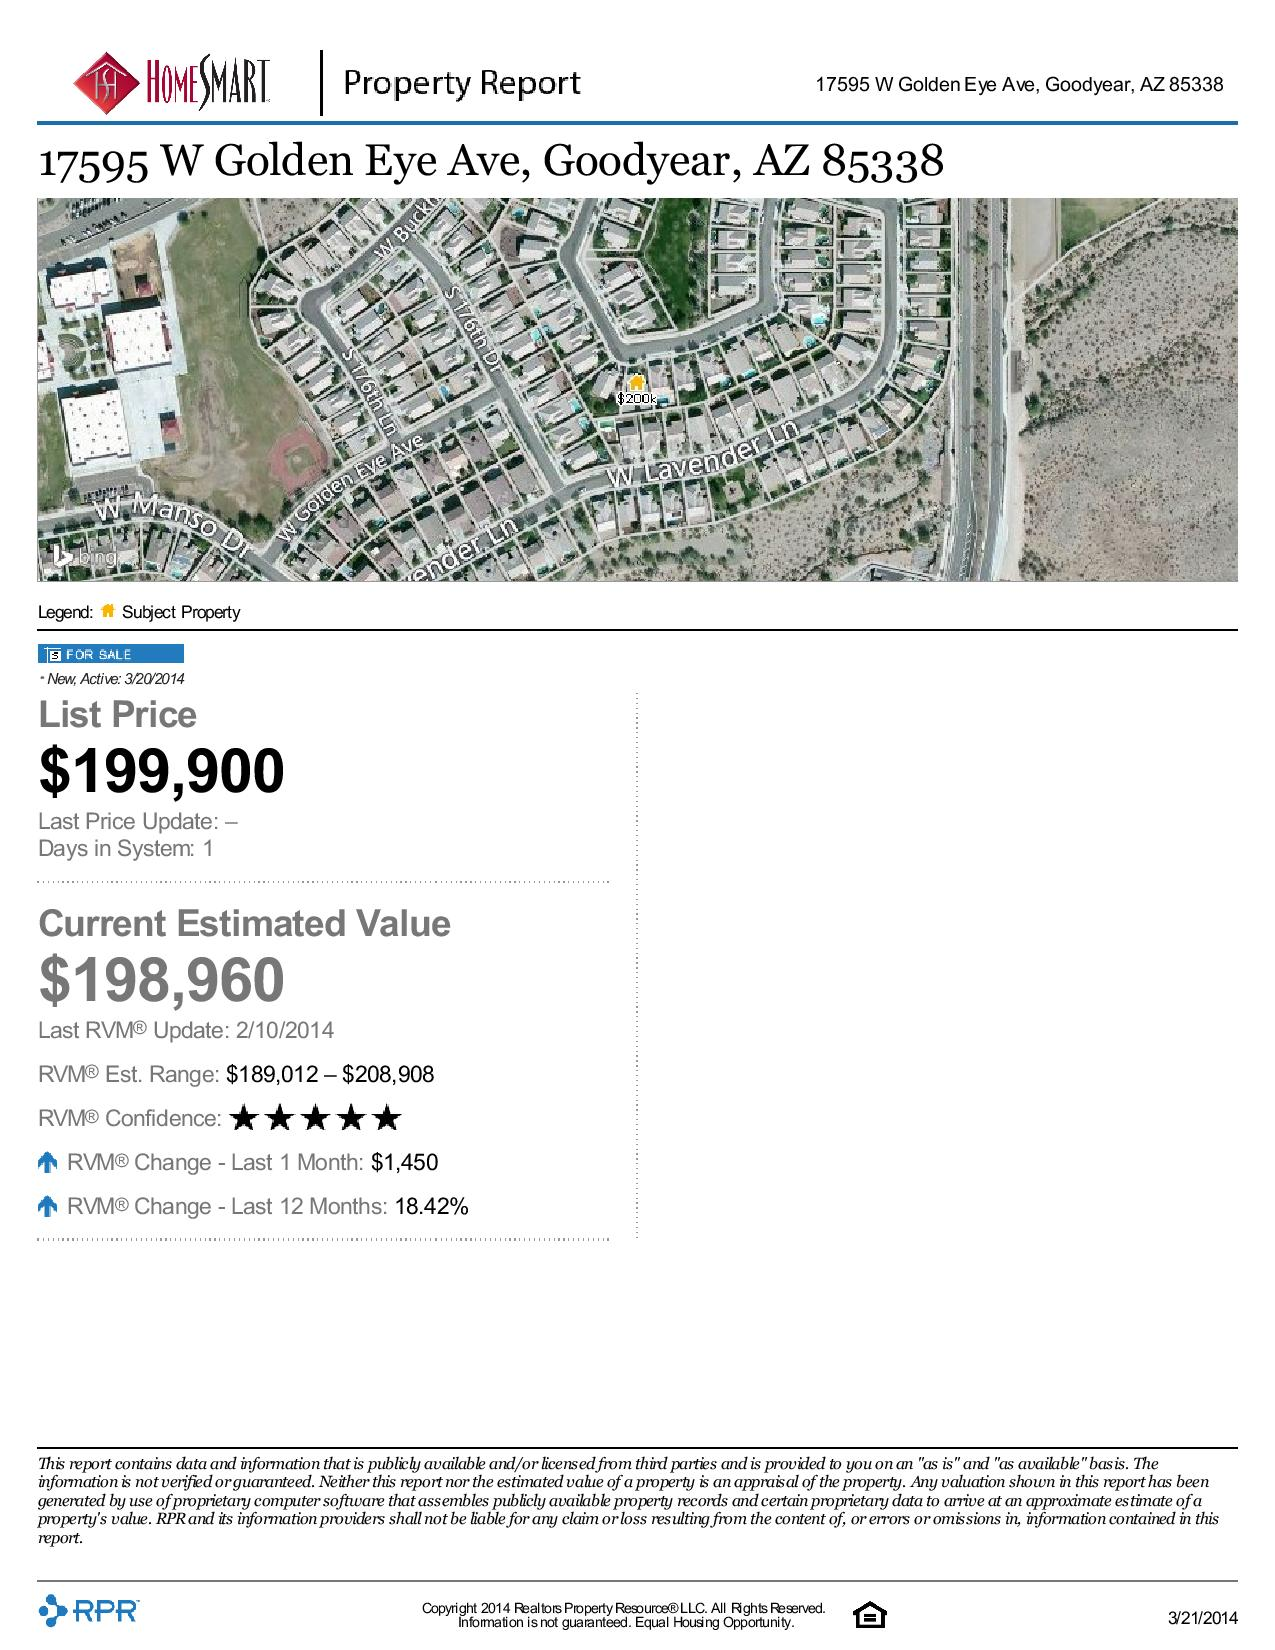 17595-W-Golden-Eye-Ave-Goodyear-AZ-85338-page-002